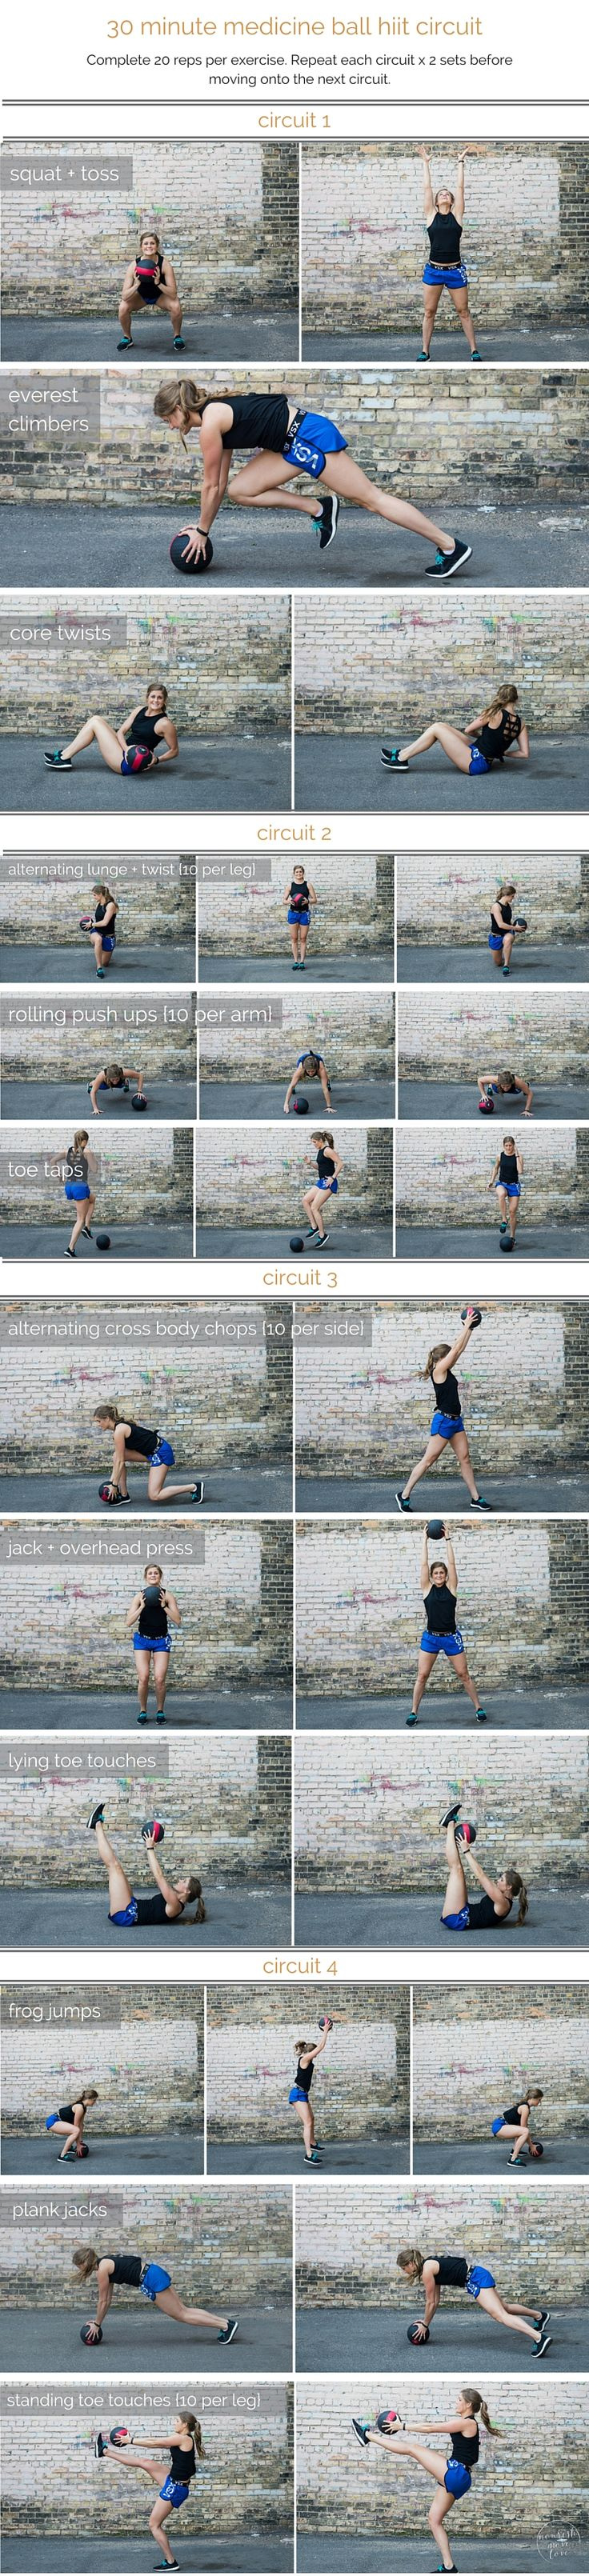 medicine ball hiit circuit workout | combine cardio, strength and stability in this medicine ball hiit circuit; a total body workout that you can do in 30 minutes or less. | www.nourishmovelove.com